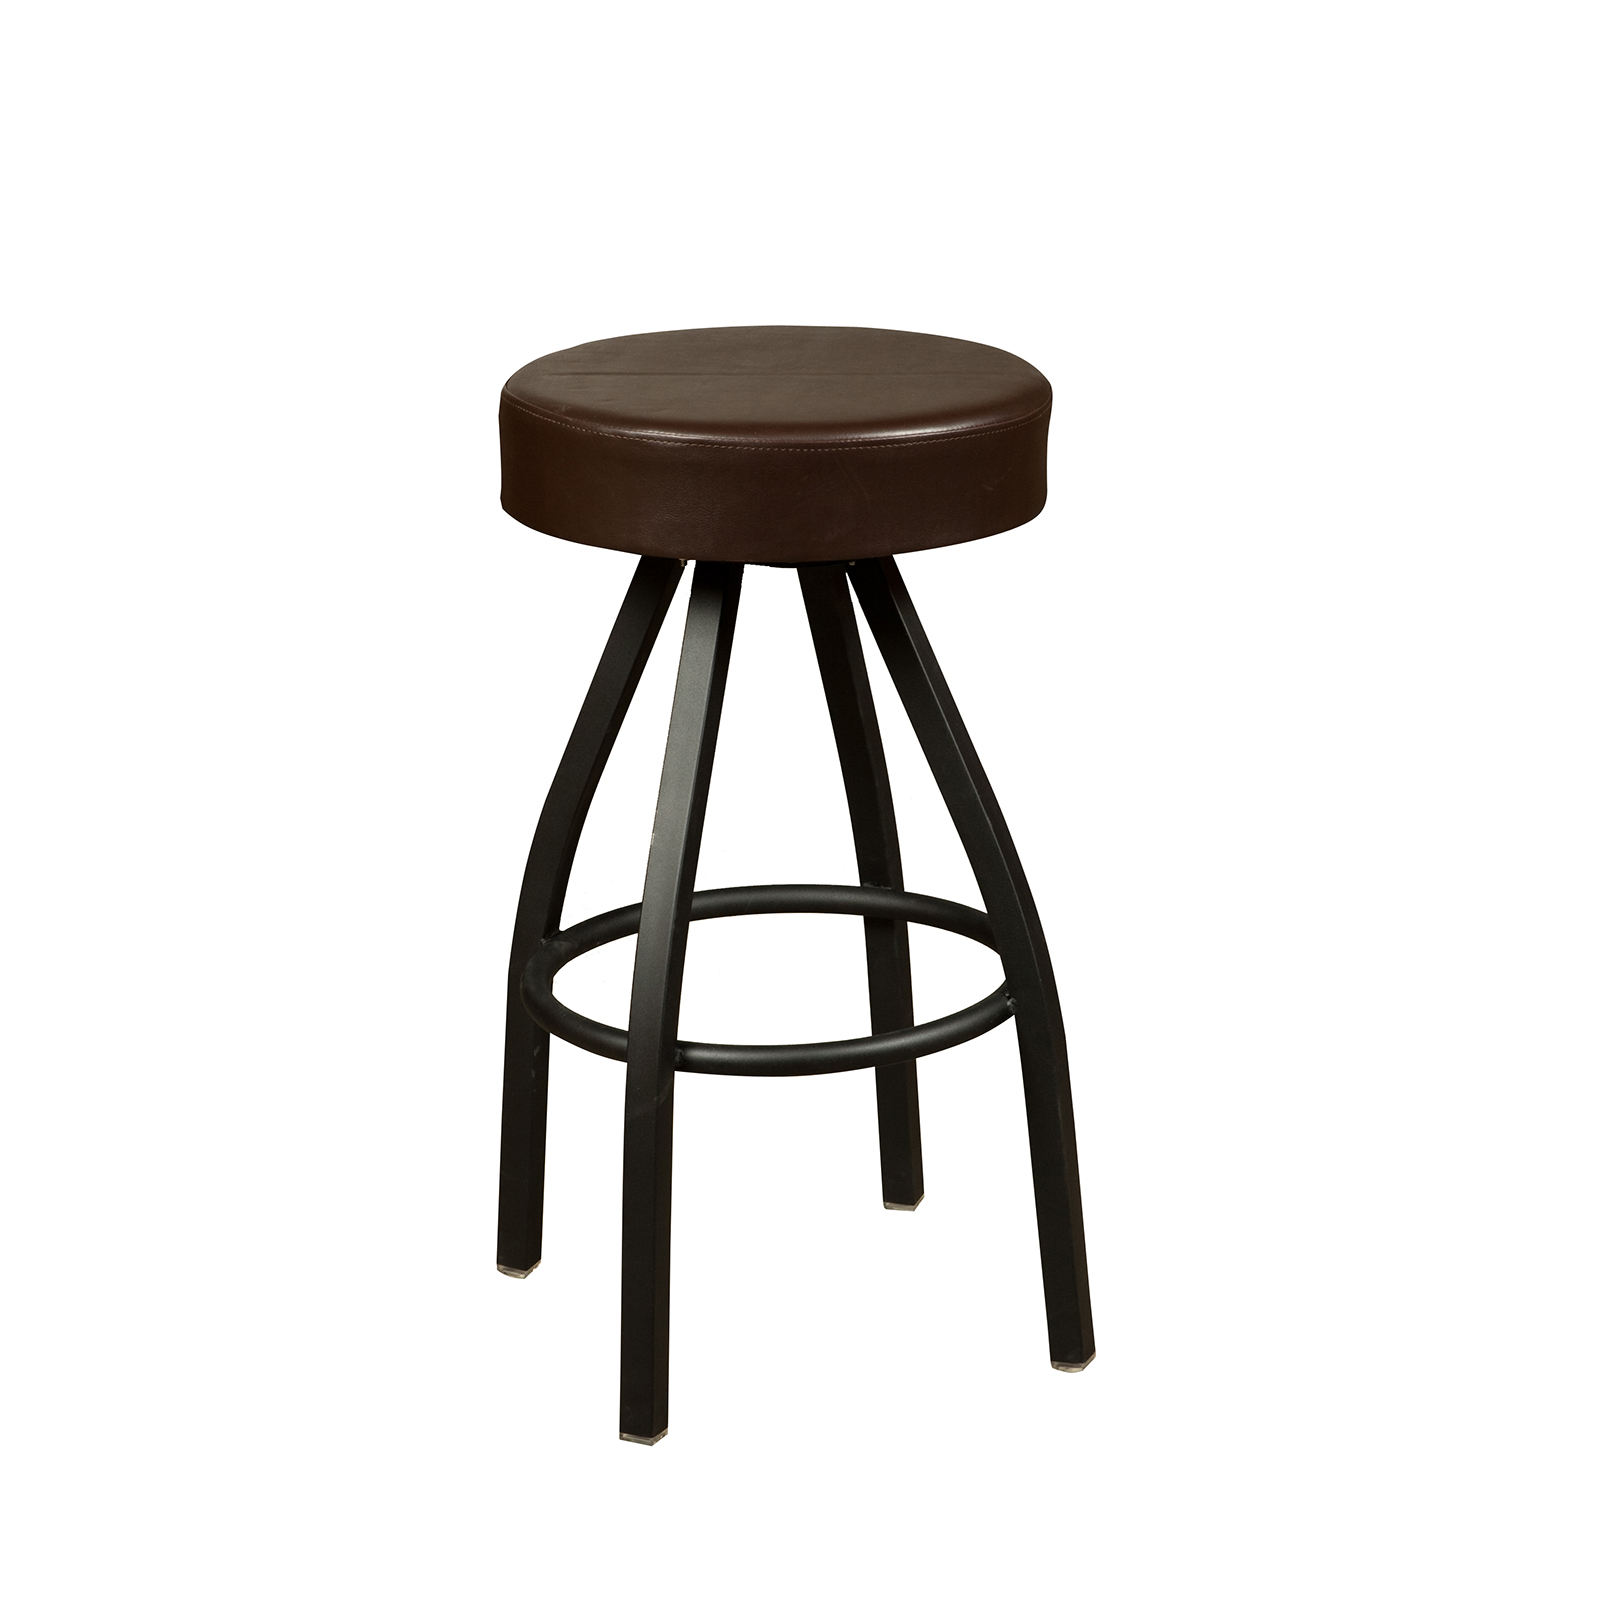 Oak Street SL0137-ESP bar stool, swivel, indoor